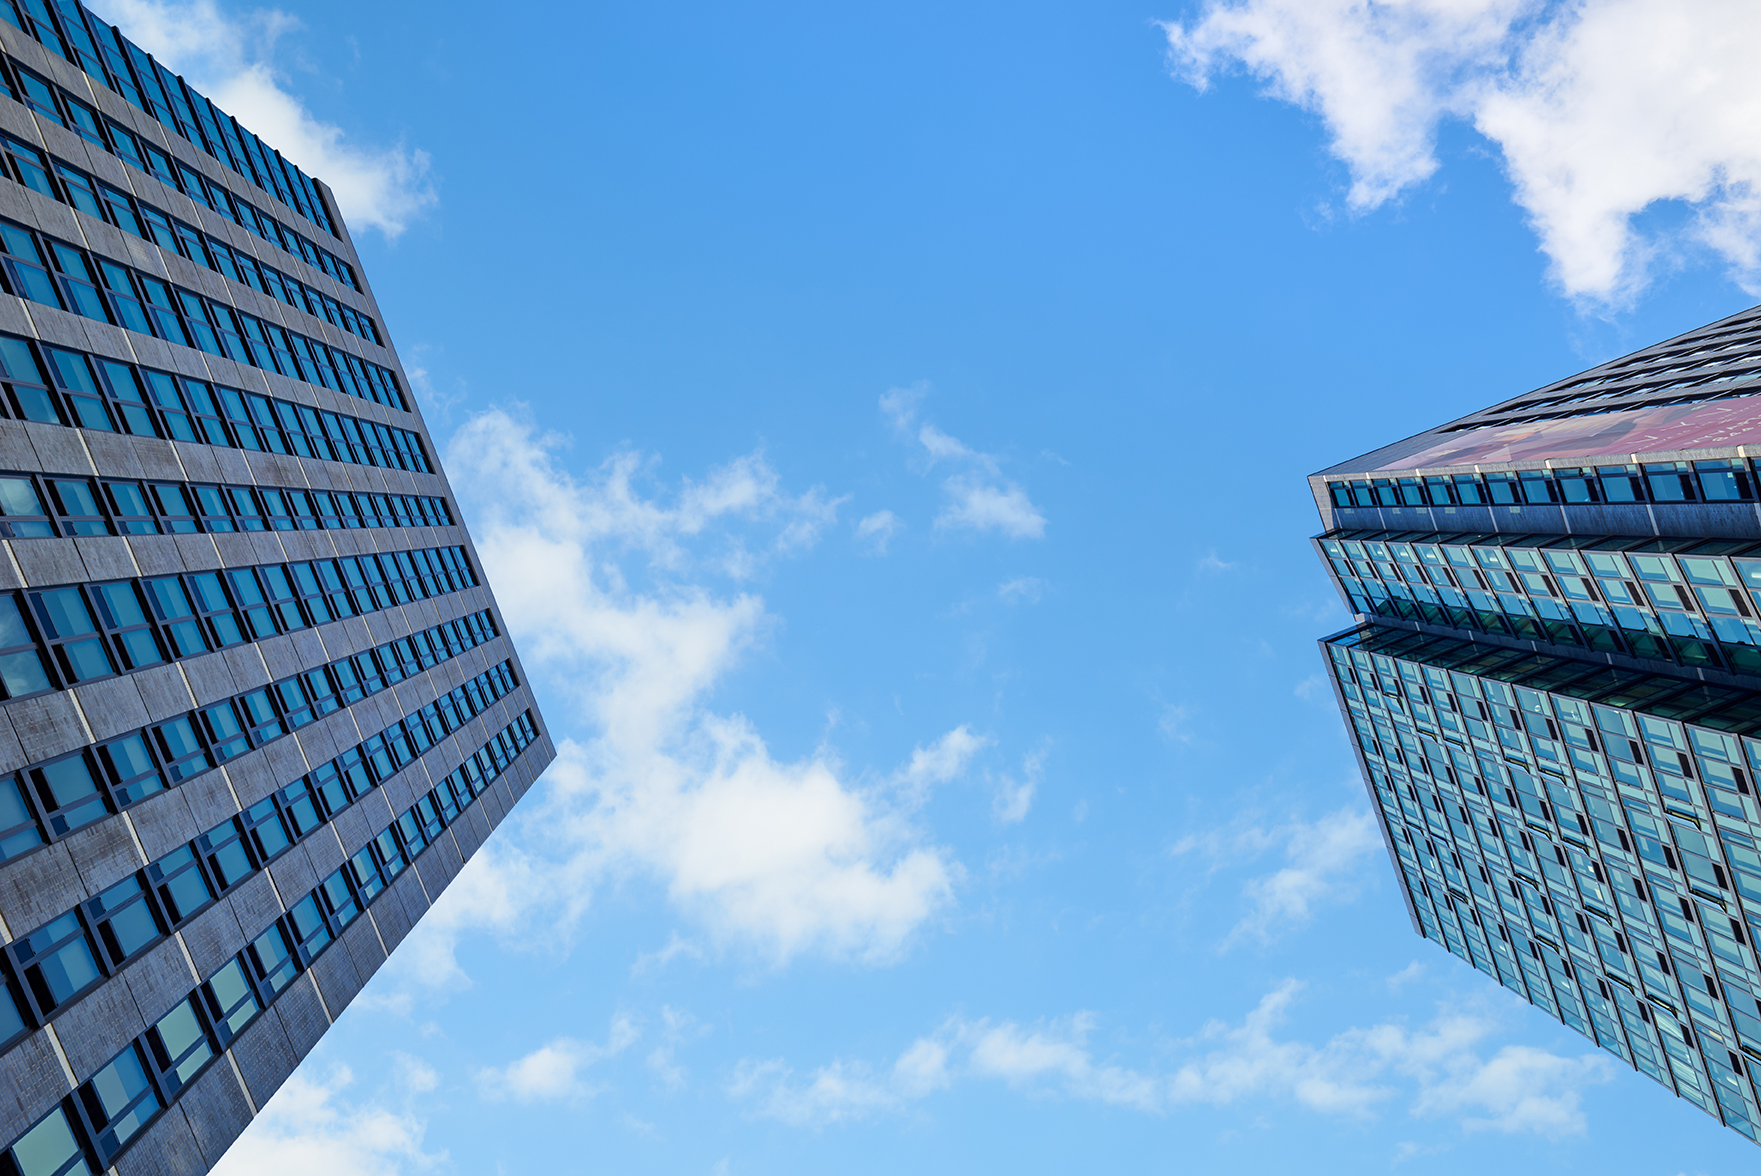 Detail shot of 2 high-rise residential towers